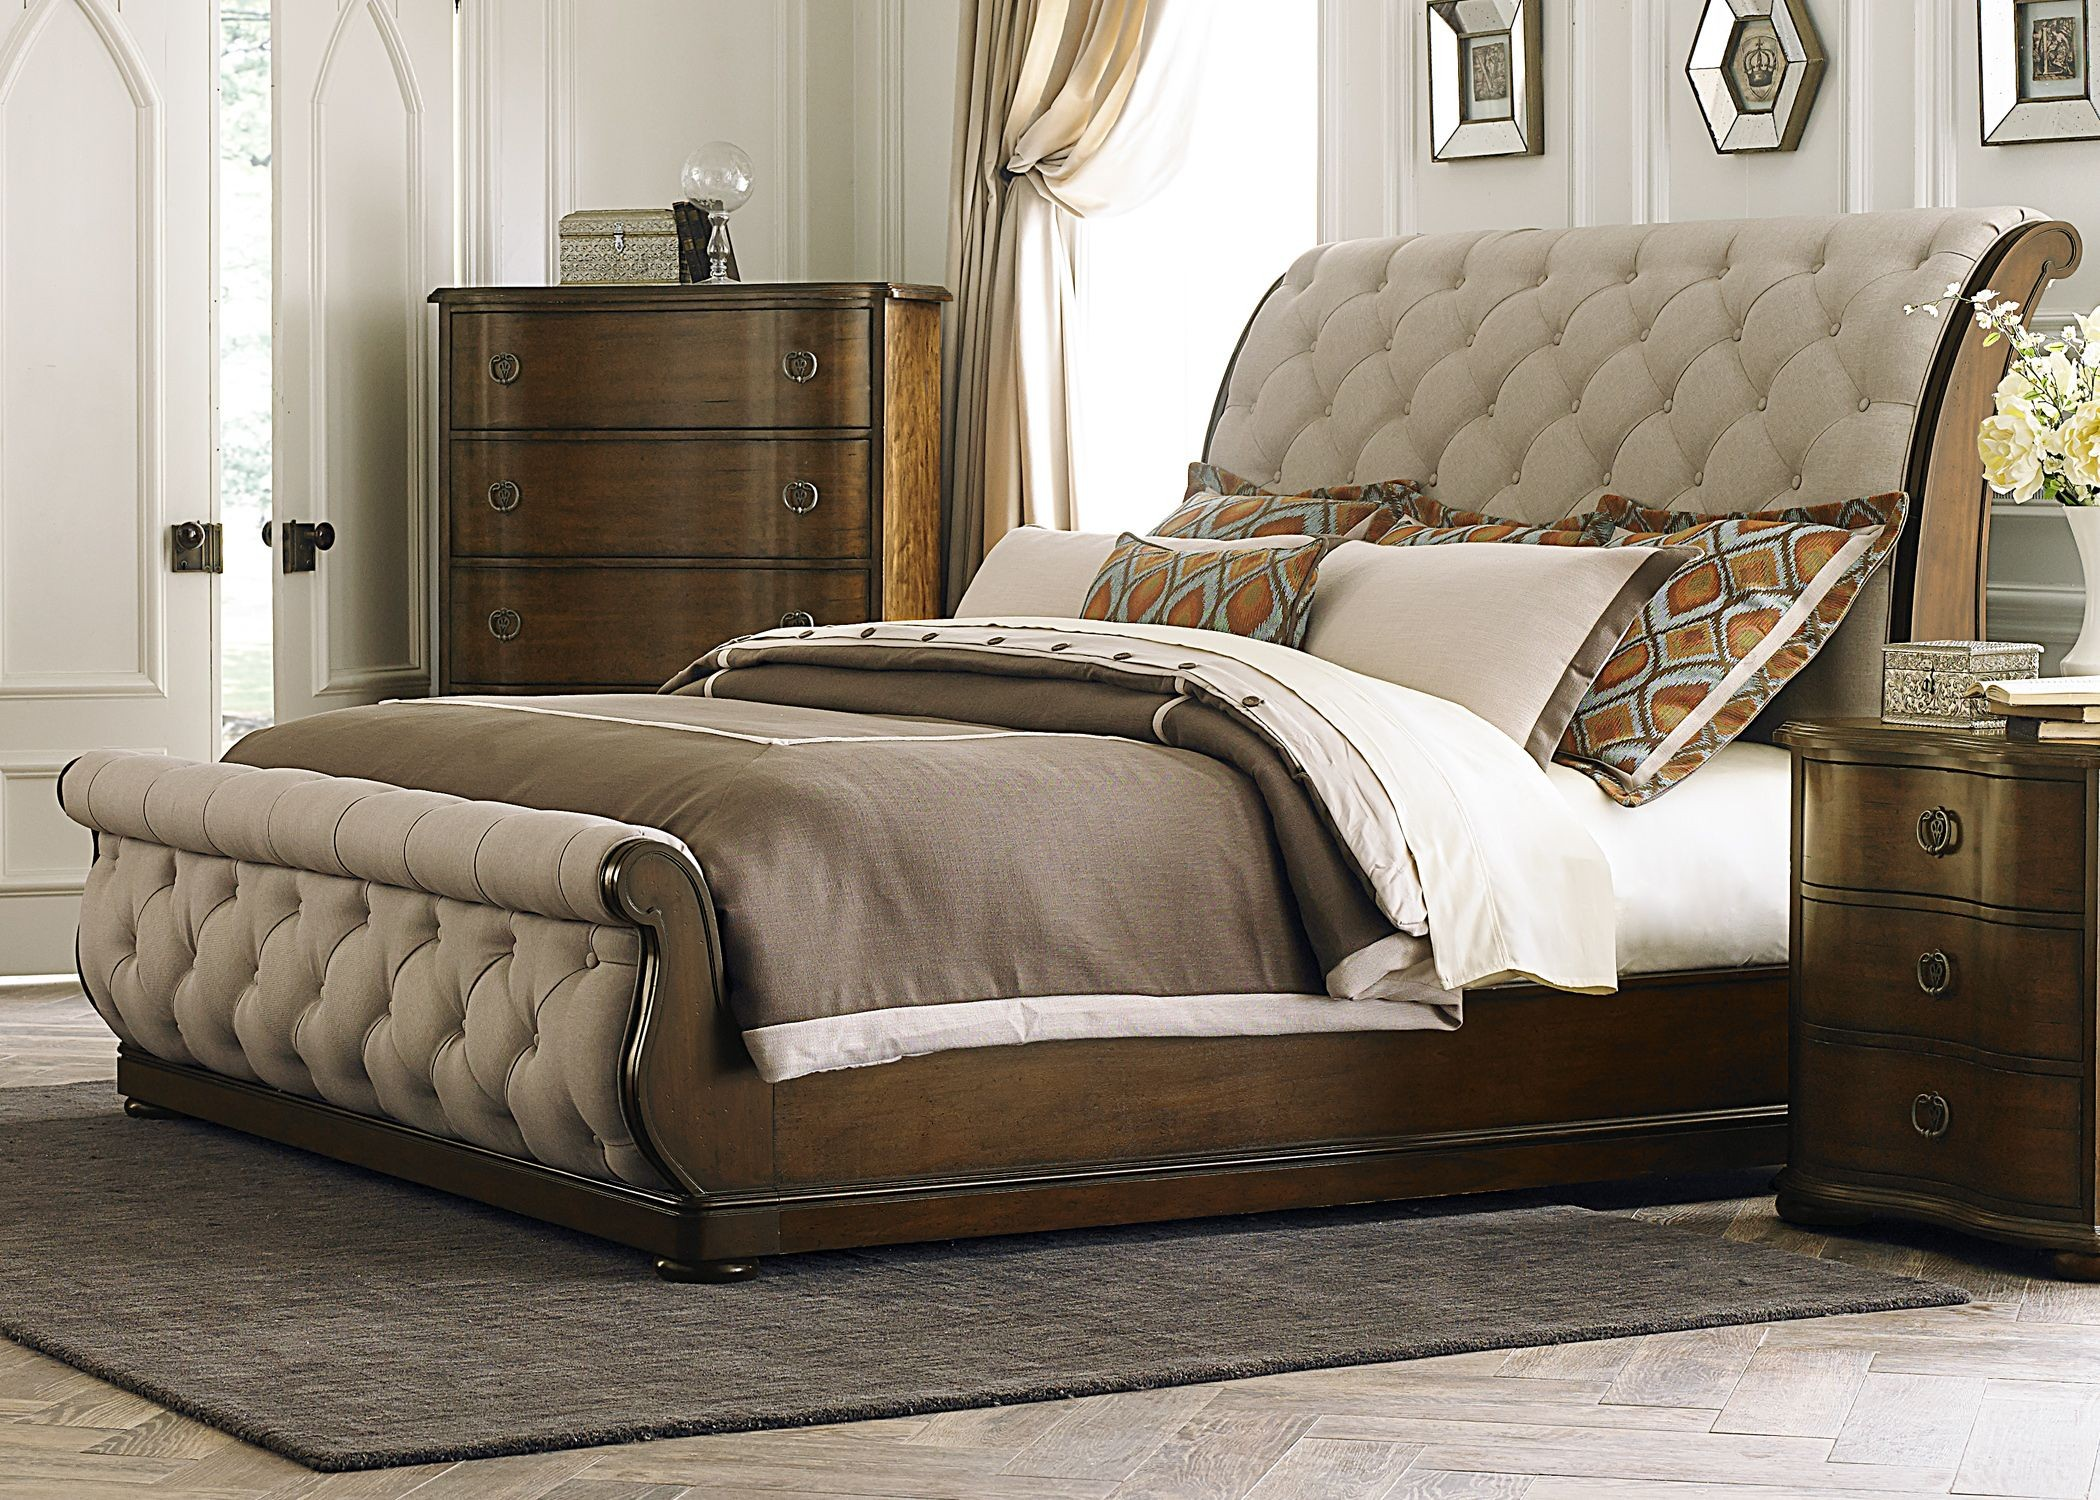 Cotswold Queen Upholstered Sleigh Bed From Liberty 545 Br